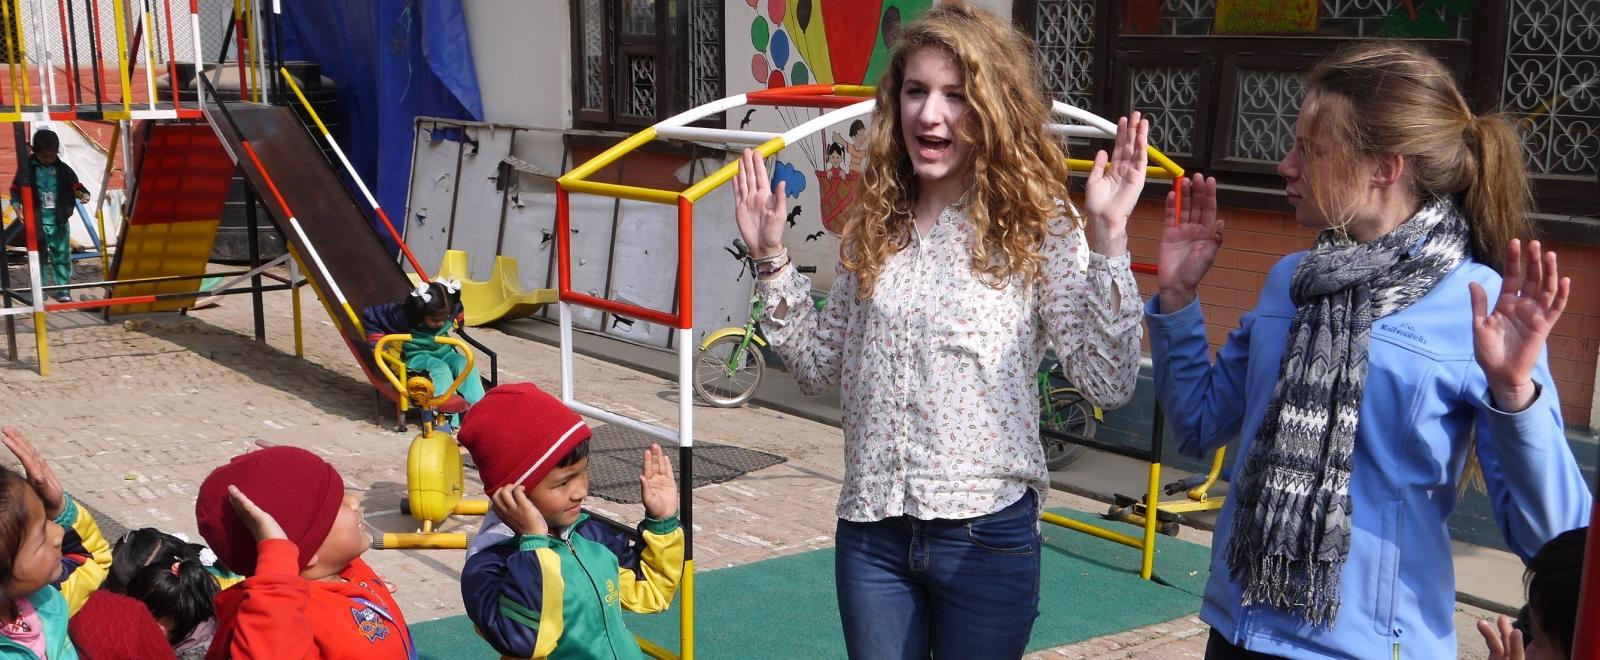 Teenage volunteers doing work with children in Nepal, do an activity with children on the playground.